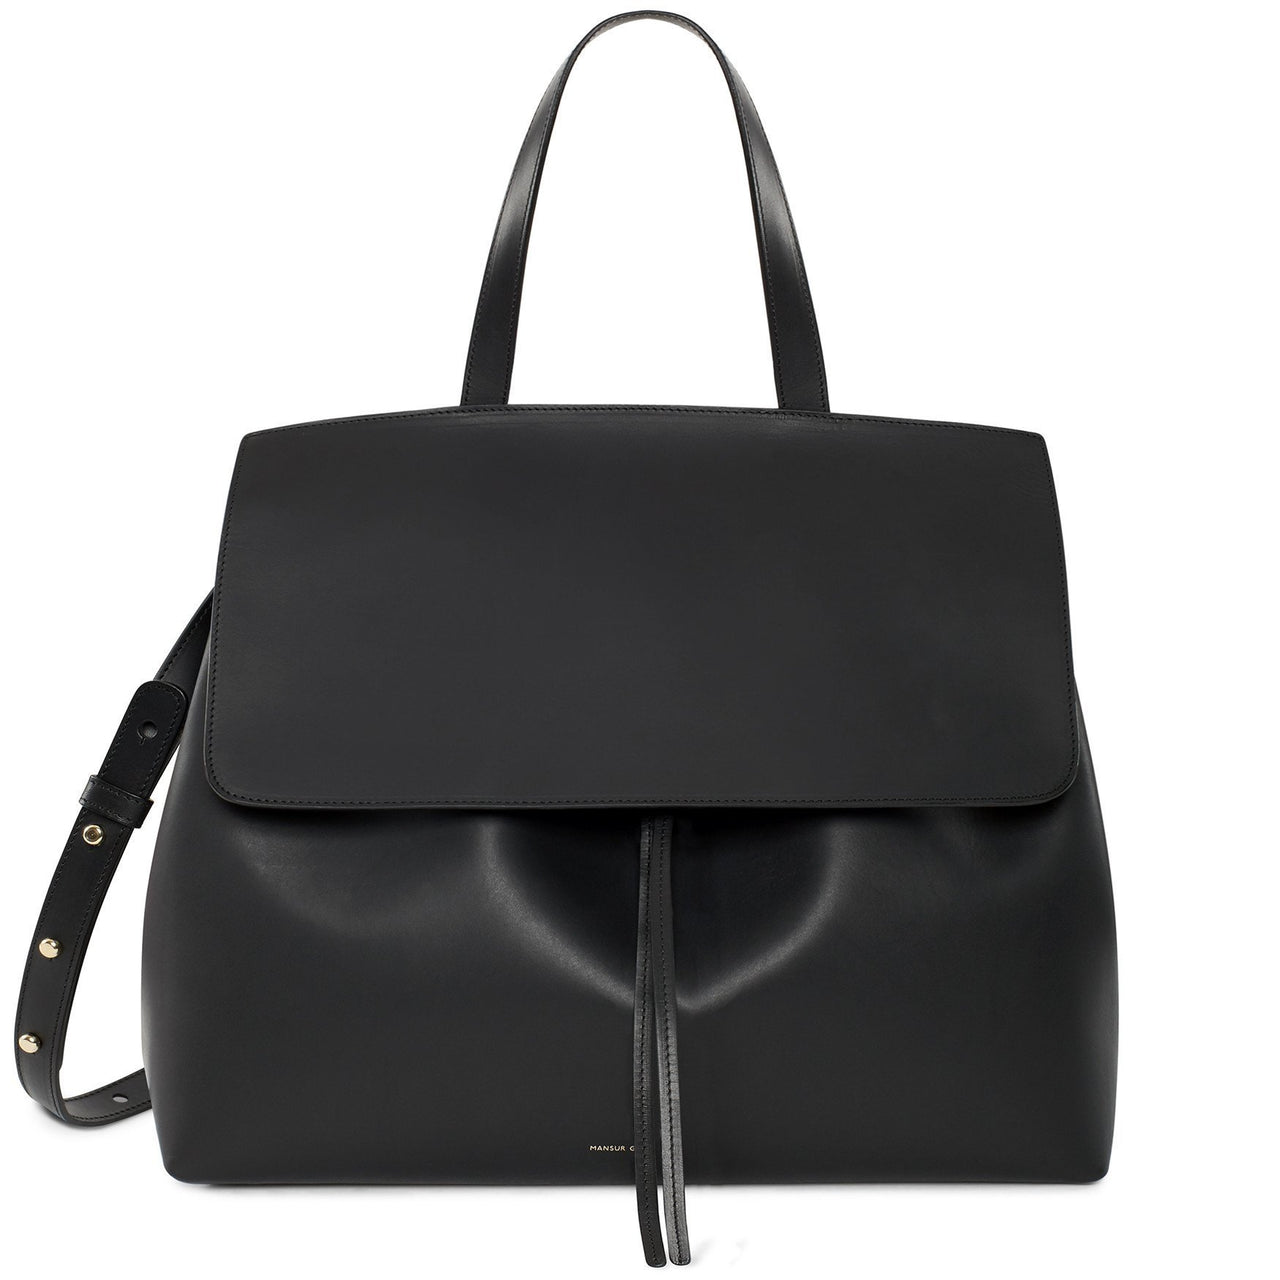 Mansur Gavriel Large Lady Bag